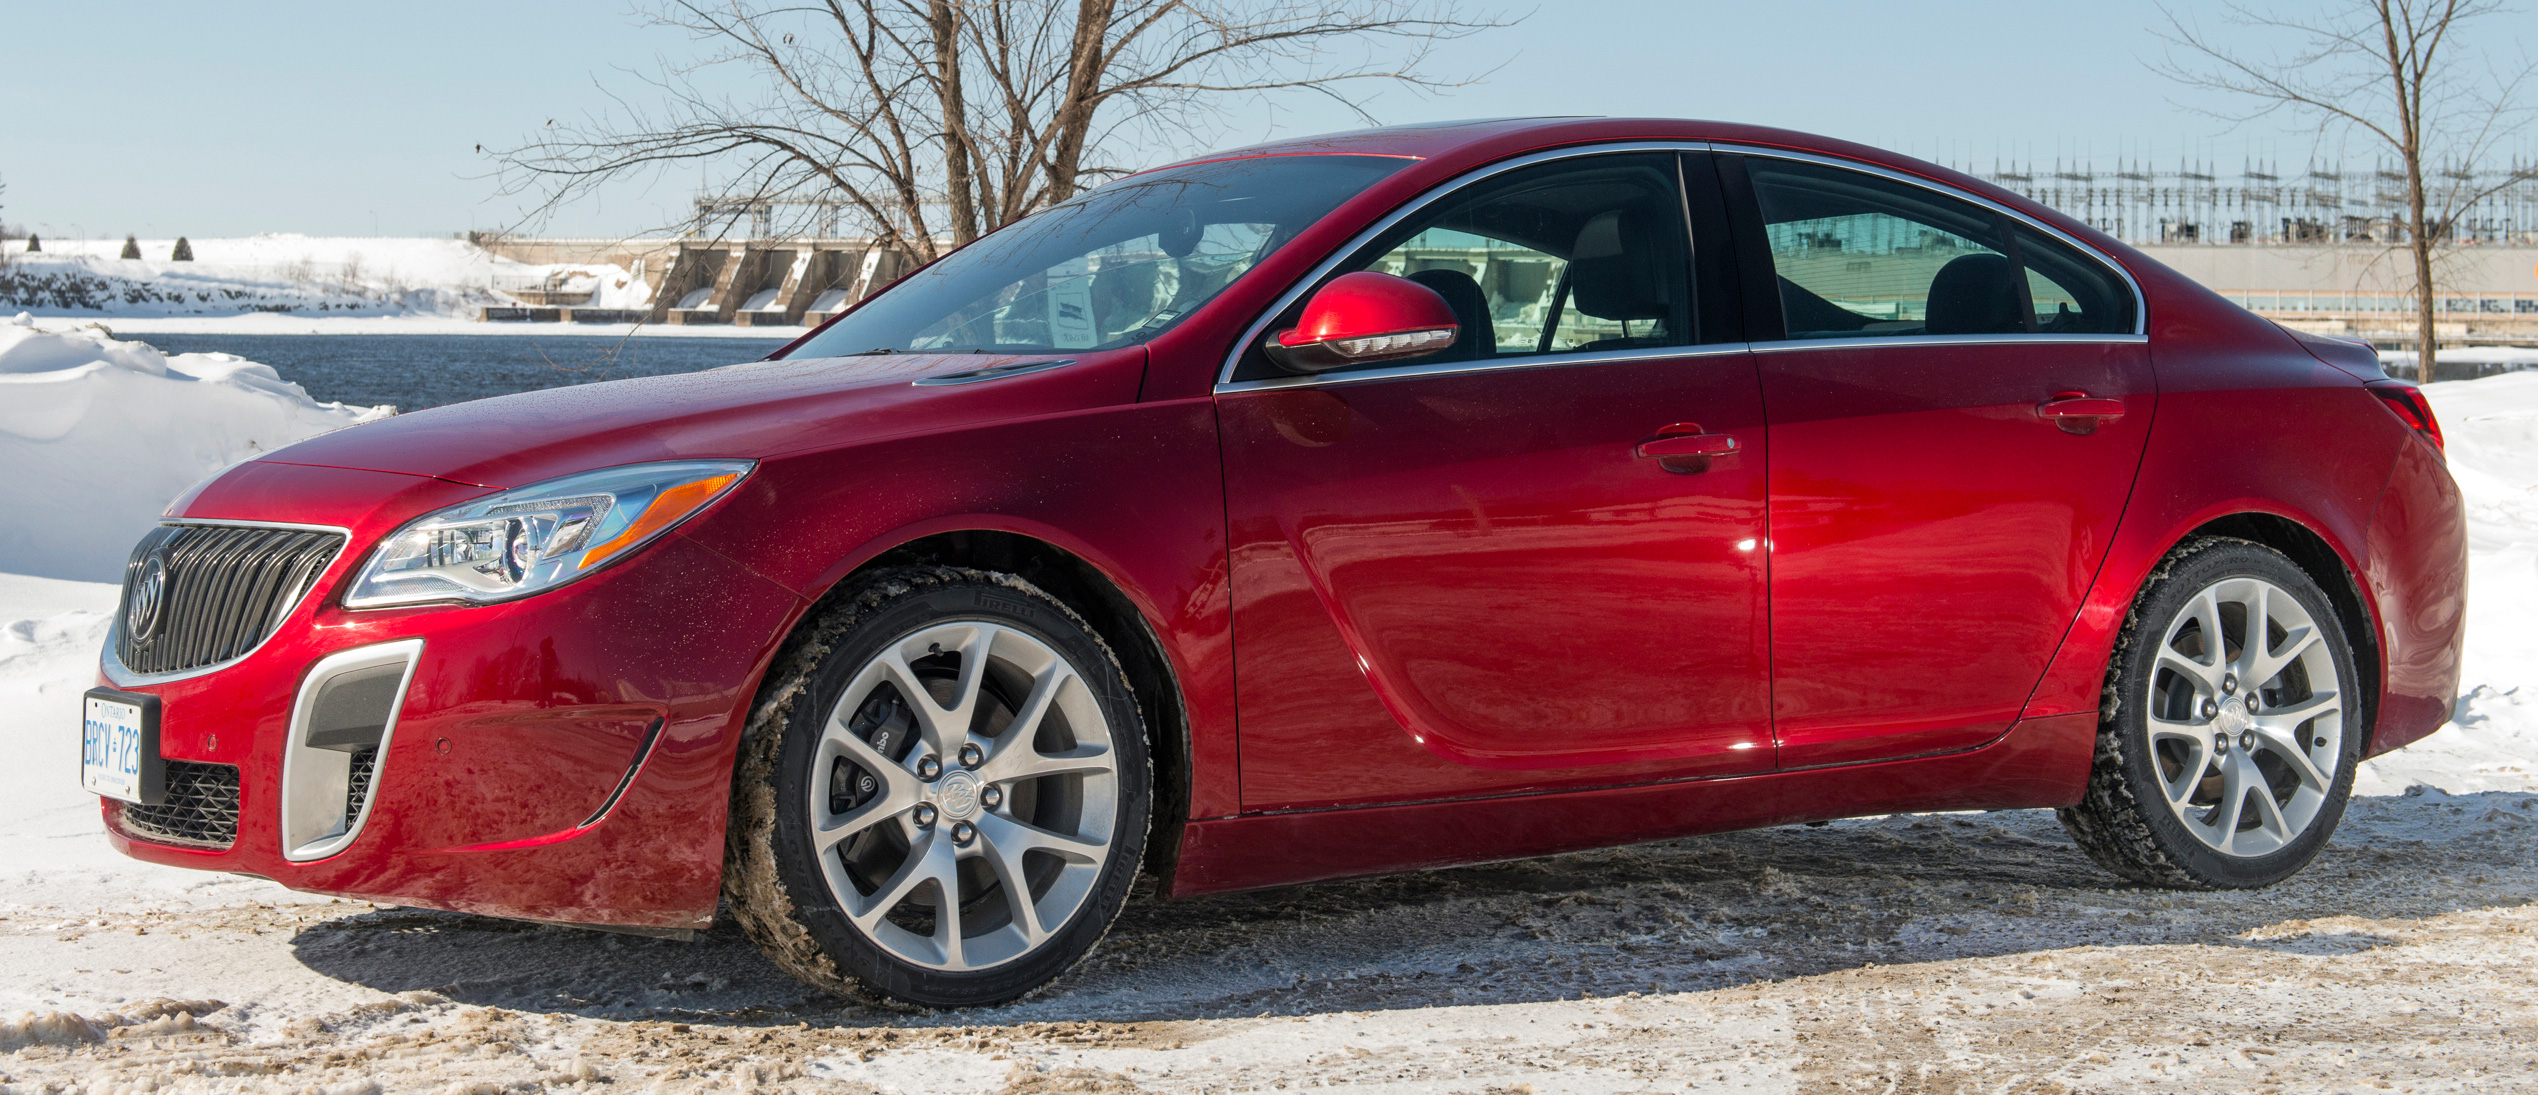 Buick S Top 10 On Consumer Reports Report Card Acura Mercedes Infiniti Drop